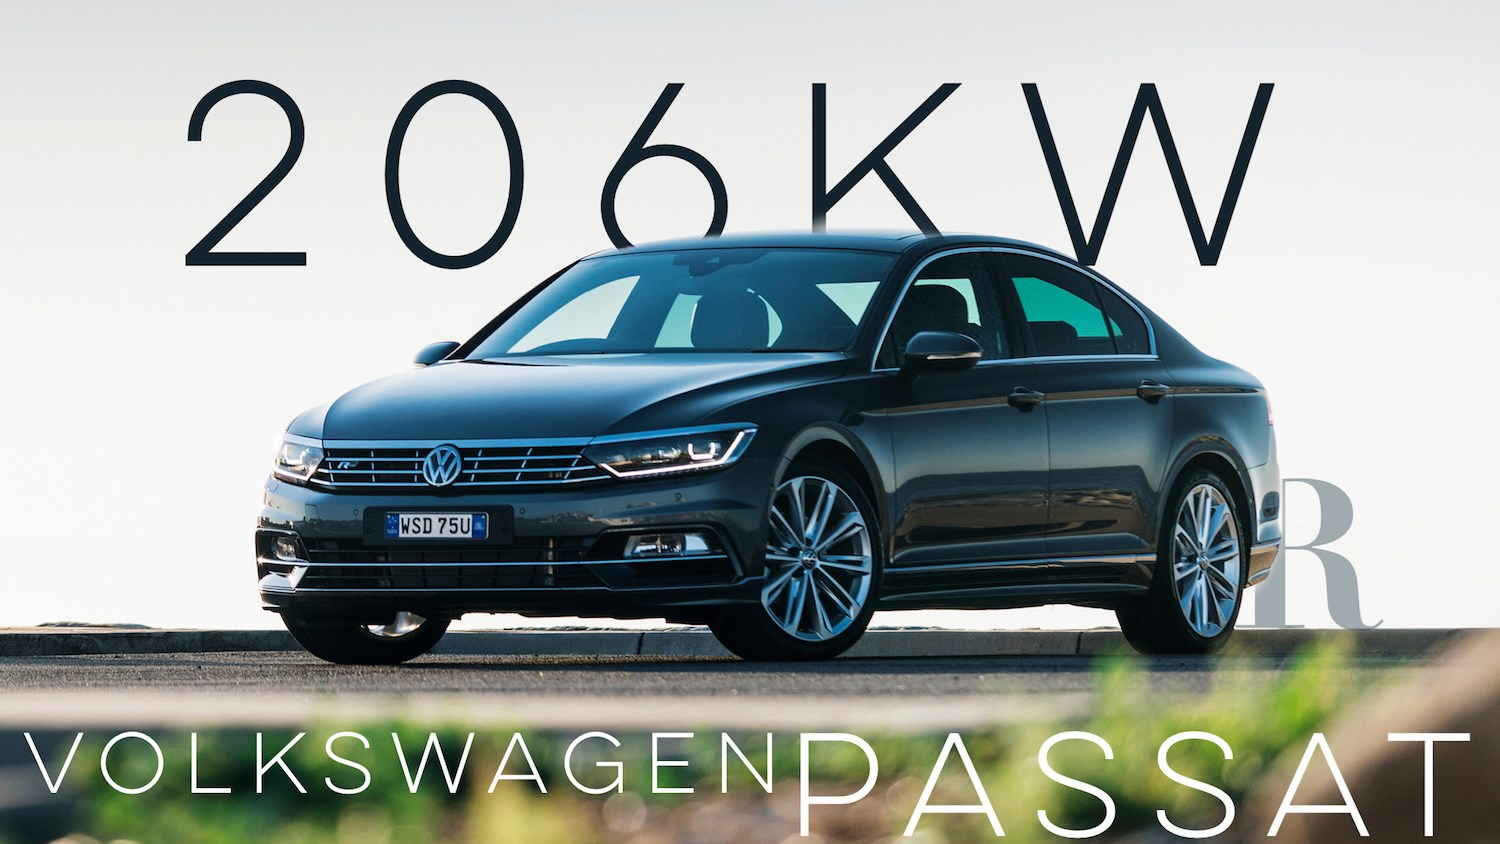 Hot 206kW Volkswagen Passat To Hit Oz In October